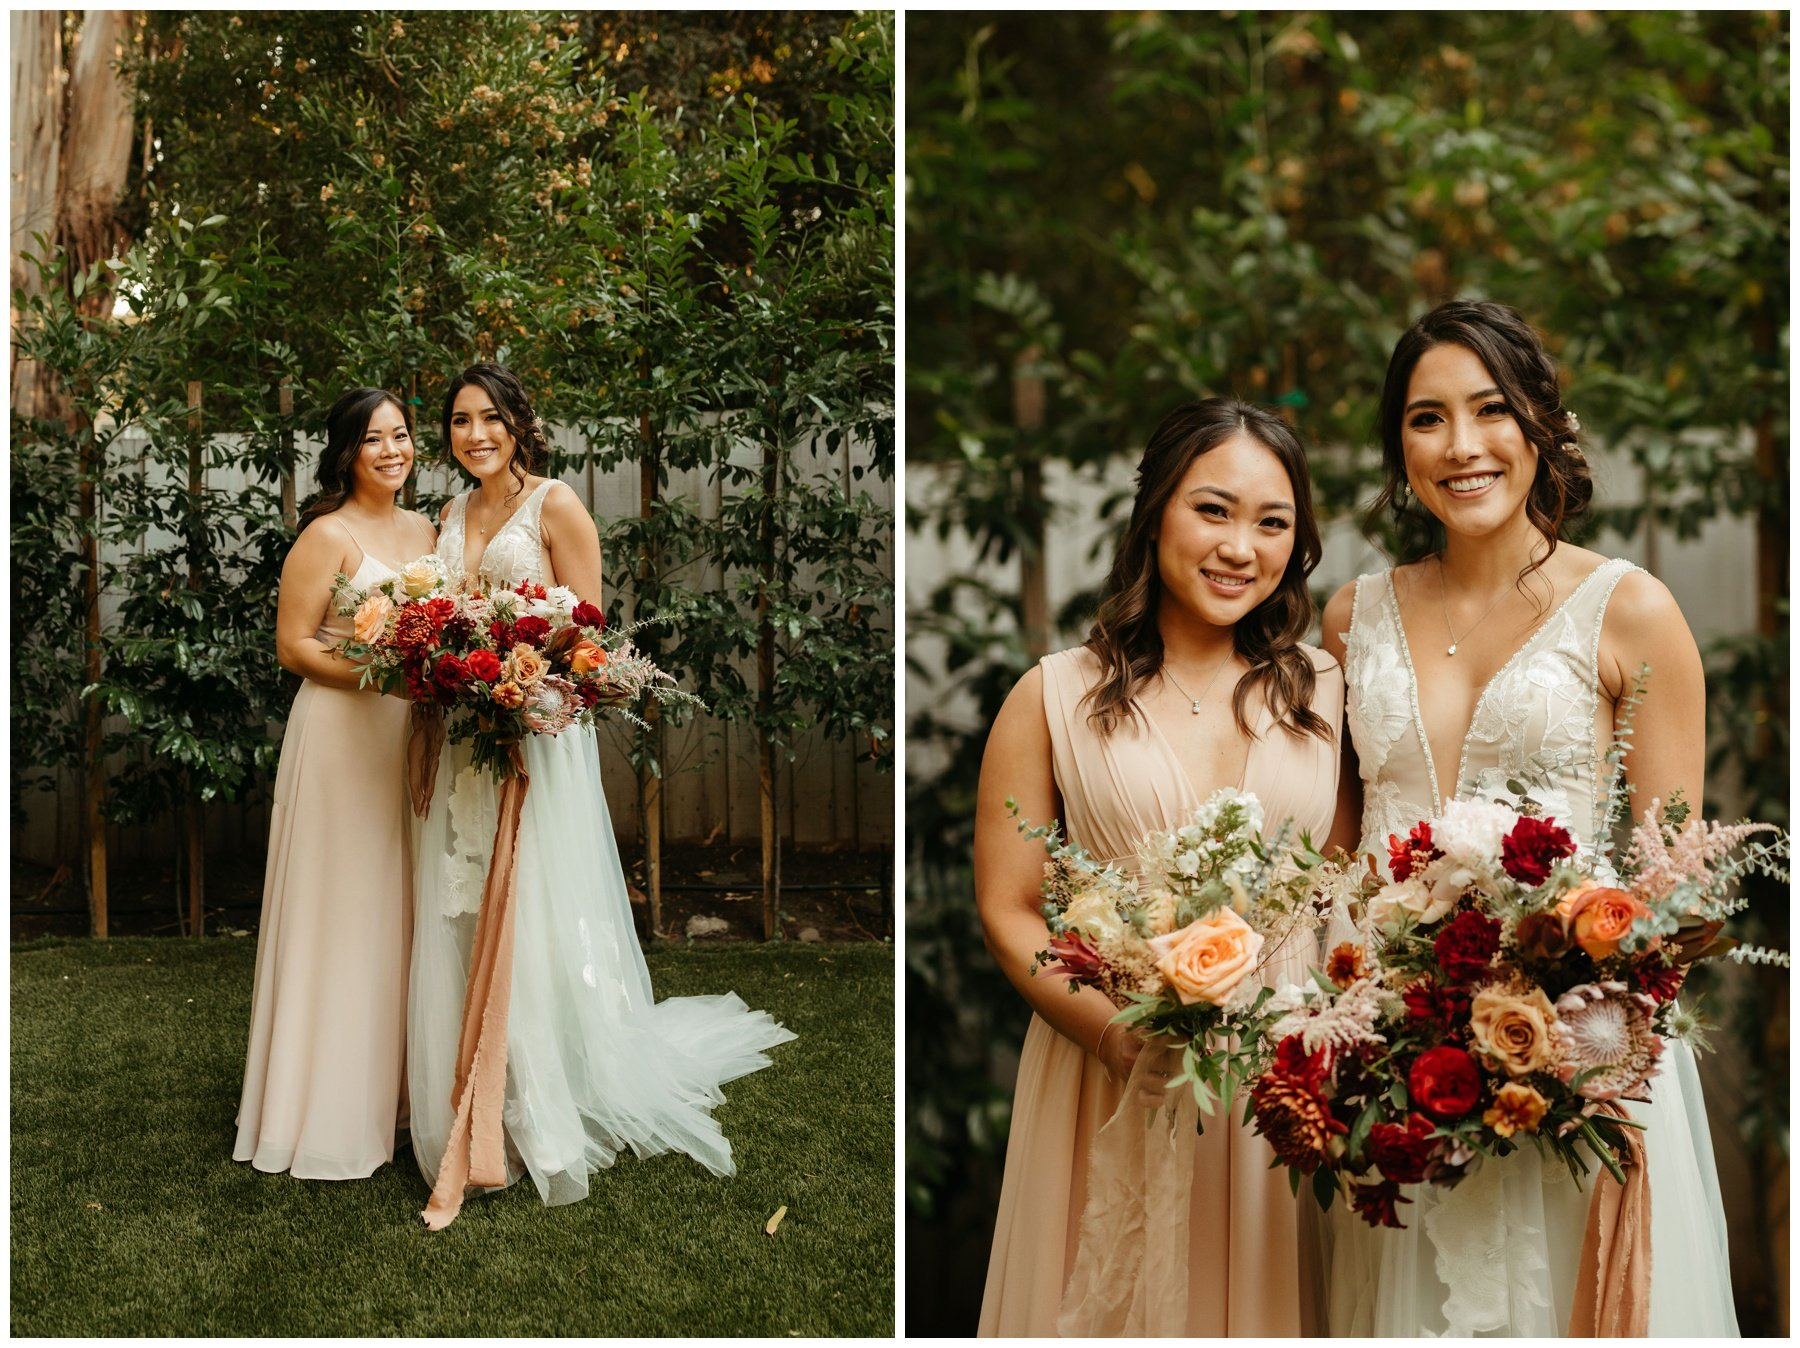 Bride holding a boho bouquet with autumn tones of burgundy and peach